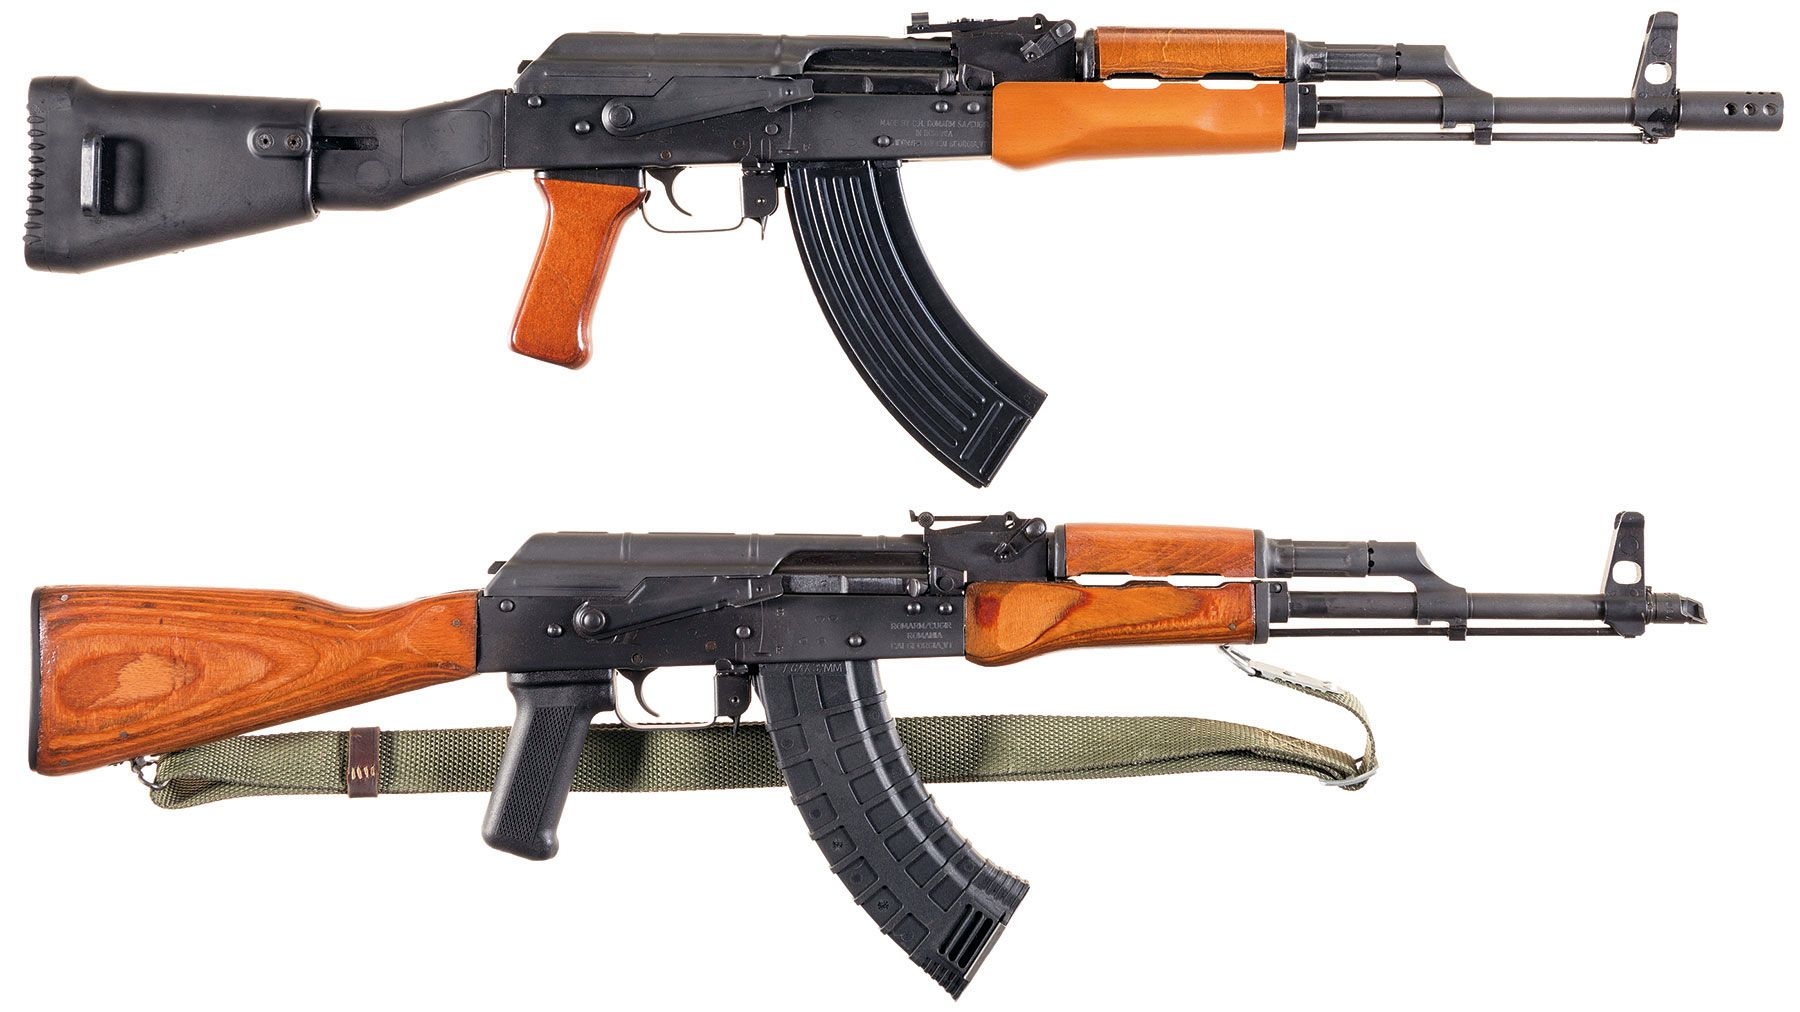 Two AK Style Semi-Automatic Carbines -A) Romarm WASR-10/63 Rifle